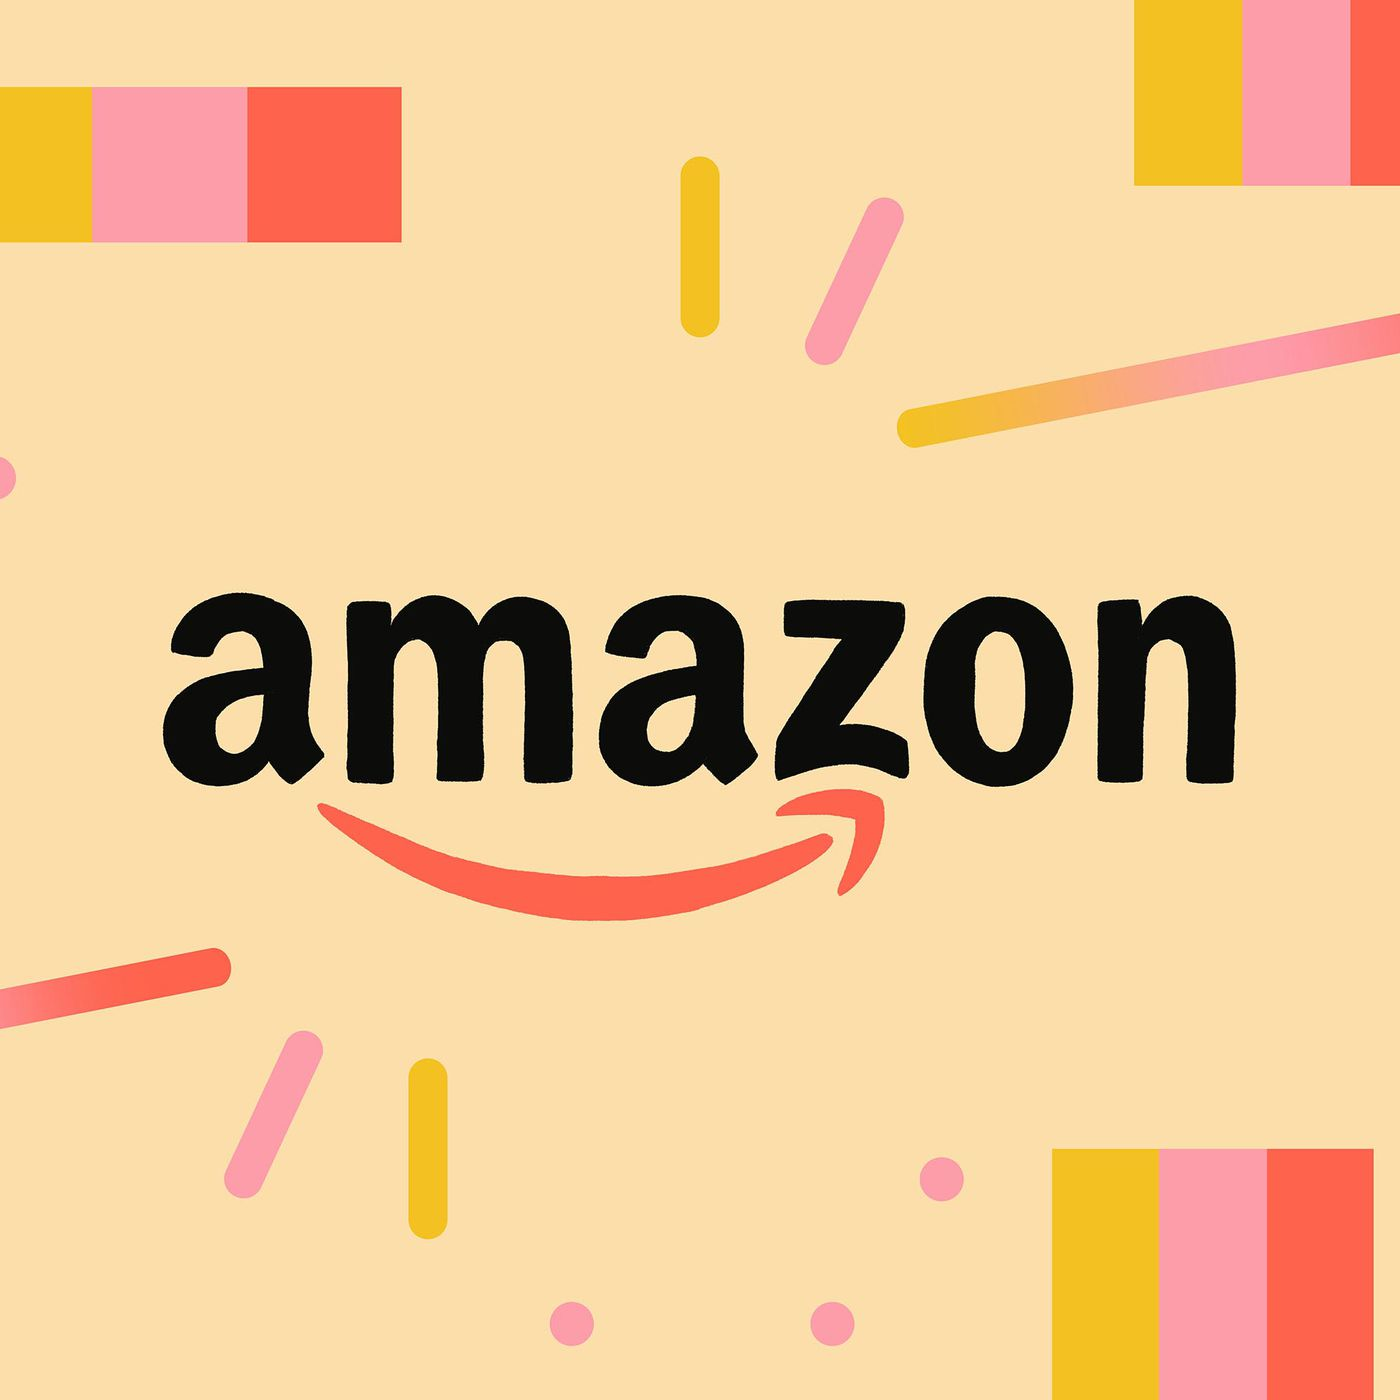 Amazon Prime Day 2019: When does it start and end? - Curbed